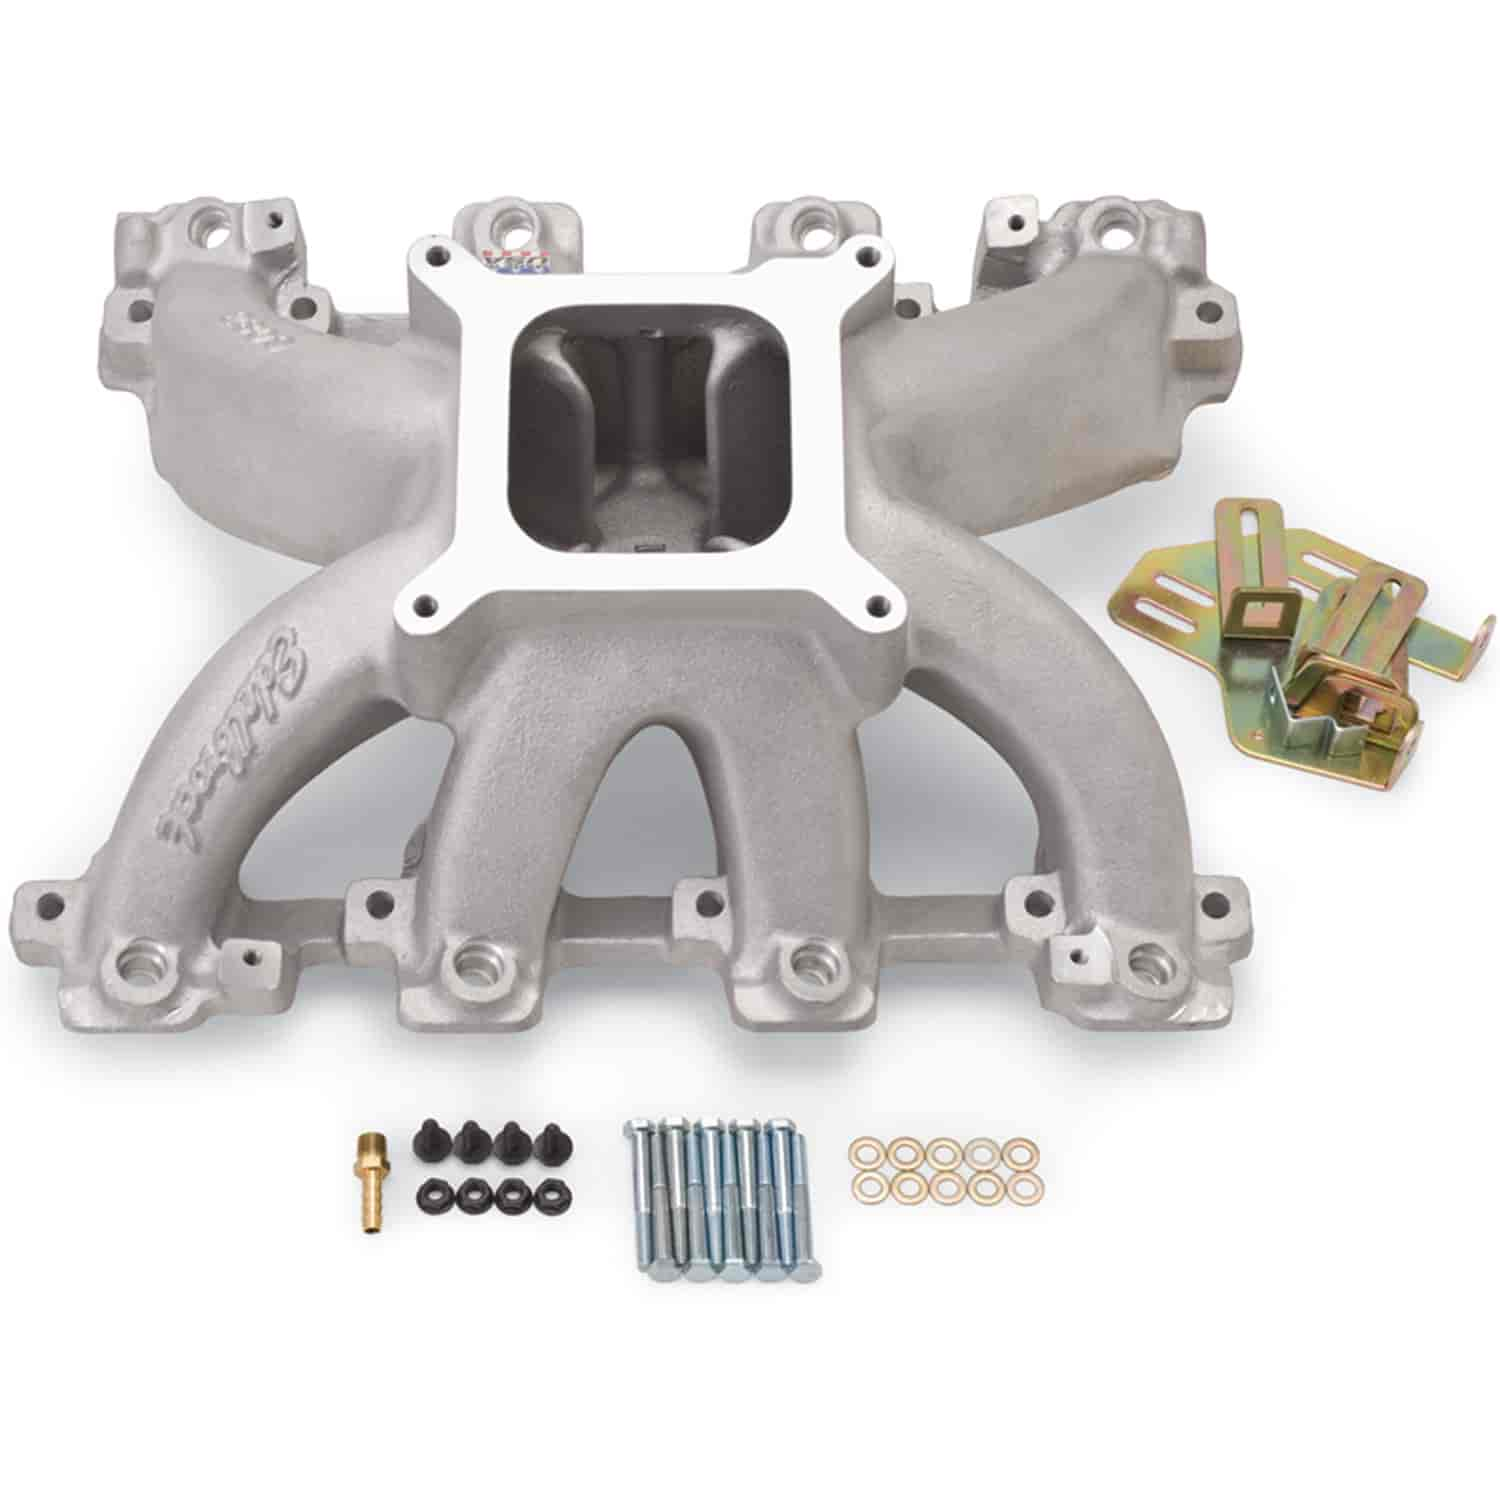 Stock Ls1 Intake Height: Edelbrock 28095 Super Victor LS Intake Manifold Chevy LS1